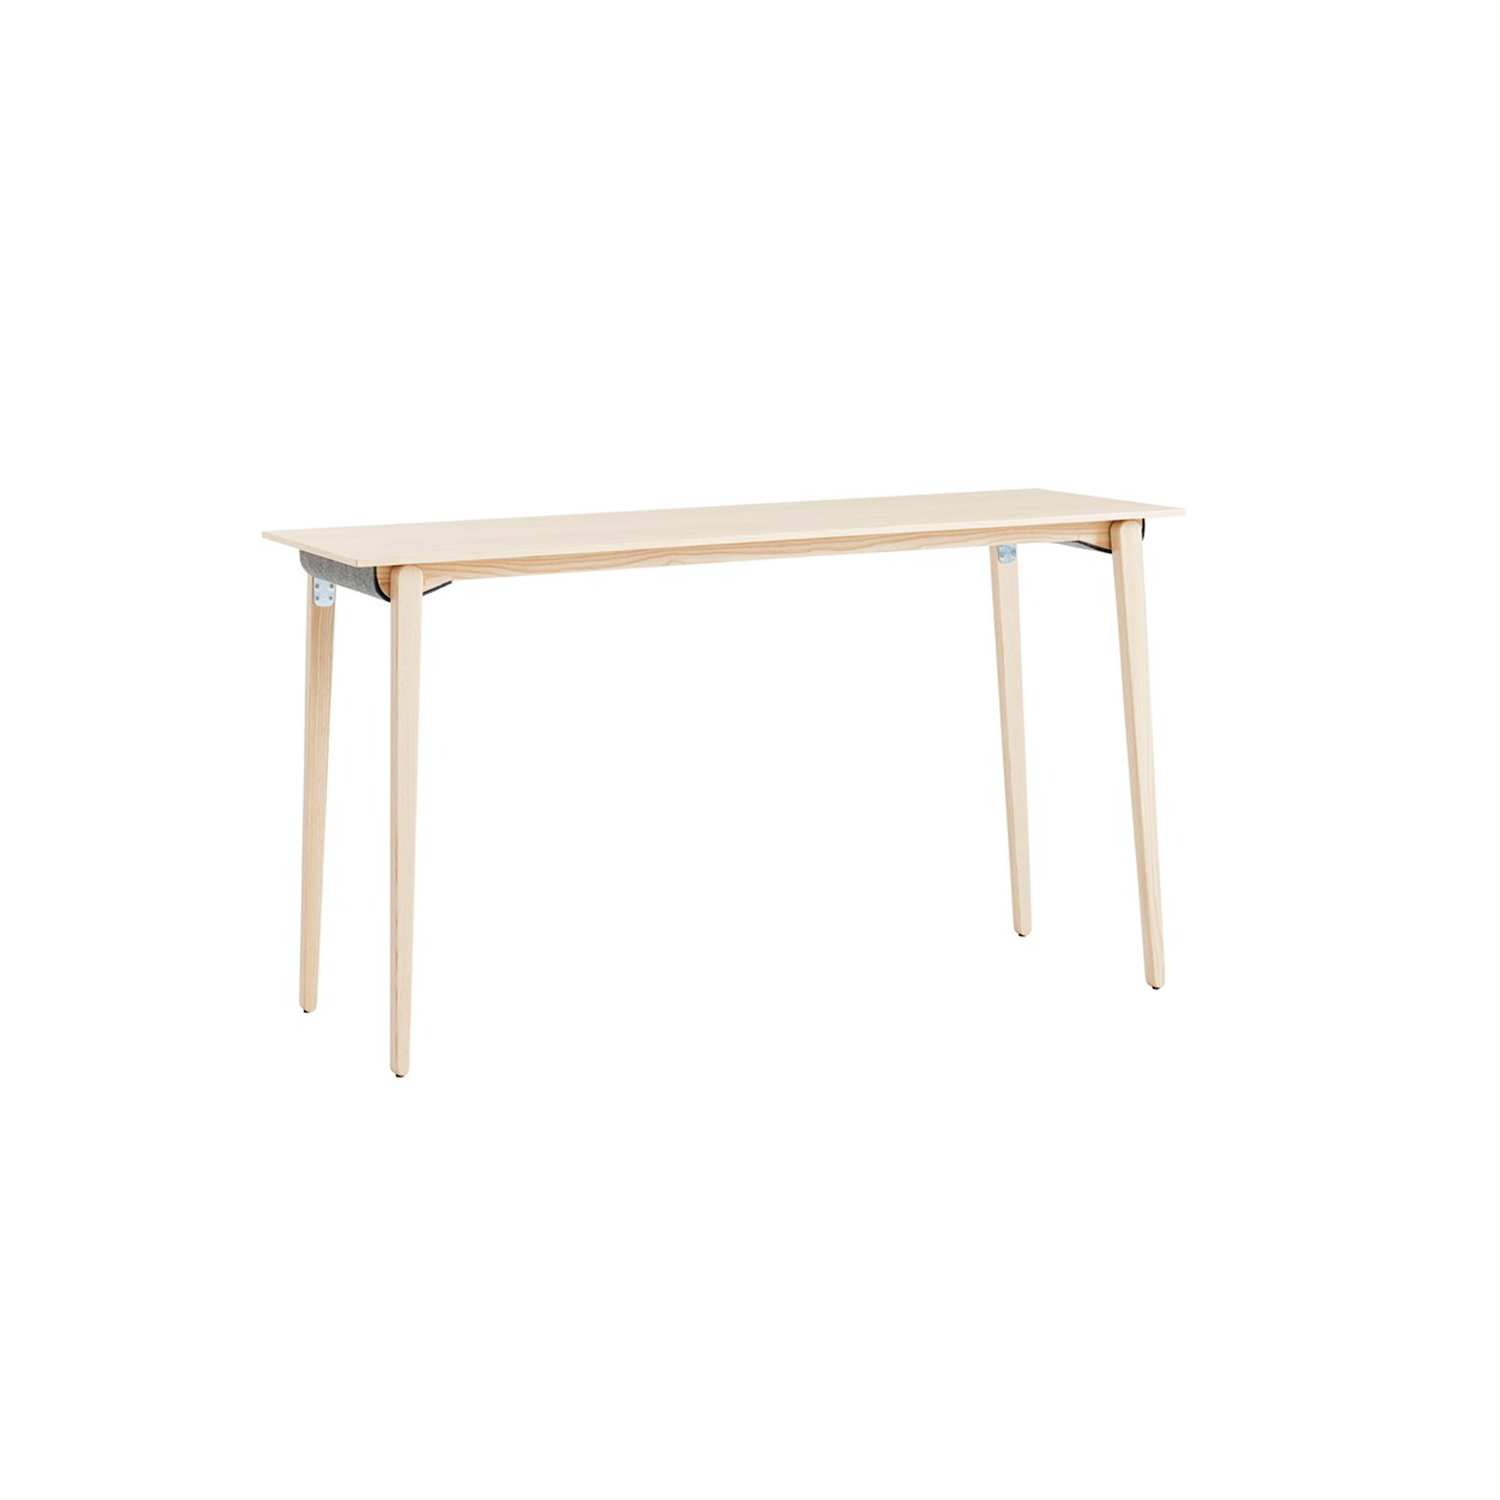 Press Table 1300 - Press (2015) is the result of an undertaking to construct a folding table made entirely out of wood. The challenge was to make a table that was lighter yet just as stable to use, just as simple to fold up and just as long-lasting as similar constructions. After years of experimentation, the designers succeeded in developing an innovative, adjustable locking mechanism which ensures that the table is not only exceptionally stable but also simple to fold up. In addition, the legs lock in place without the need for a cross-piece or stretcher, thus providing knee room for comfortable seating at the short ends of the table. A concealed grip milled into the underside of the tabletop makes moving the table simpler. The tabletop is veneered with oak, birch, ash, standard stains on ash and white glazed oak or ash. The top is also available in laminate (white, black matte, oak, birch or ash) and black desktop. The table is supplied with a wooden edge strip or for a more durable tabletop, choose a plastic edge strip in white or black. Stacking and safety cover in felt of the colour anthracite as standard. The cover is also available as an option in the colours light grey and off white. The solid wood legs are in oak, birch, ash, standard stains on ash or white glazed oak or ash, and have felt floor protectors as standard.  A range of materials, finishes, colours and accessories including built-in USB ports and cable slots are available in a variety of combinations. Please enquire for more information.  | Matter of Stuff